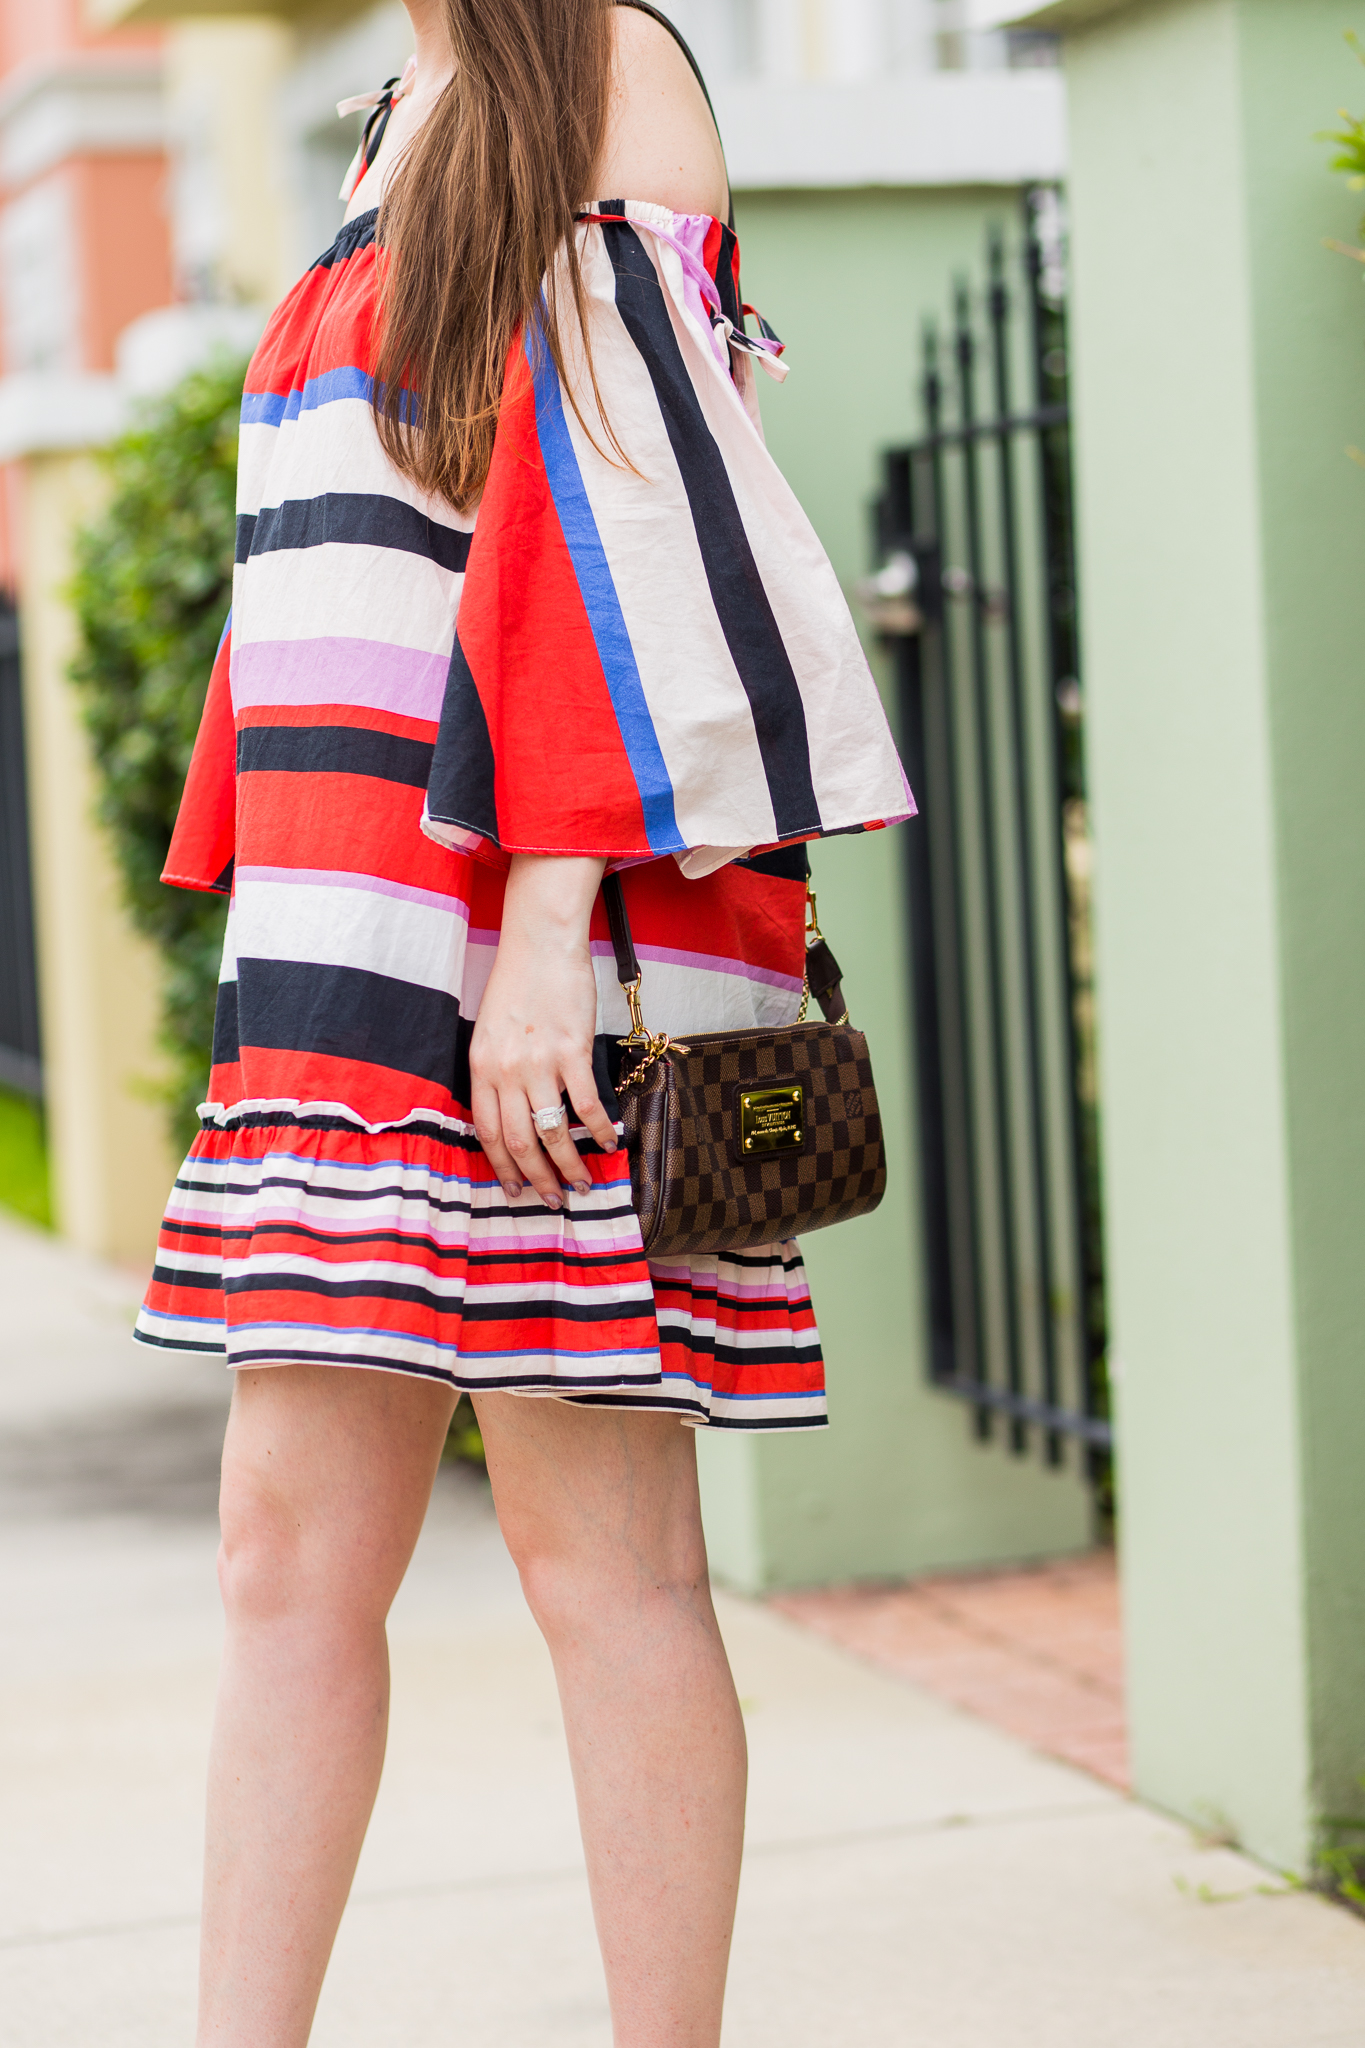 nicholas dress, nicholas amalfi dress, striped dress, summer dress, bright color dress, multicolor striped dress, eva clutch, damier ebene